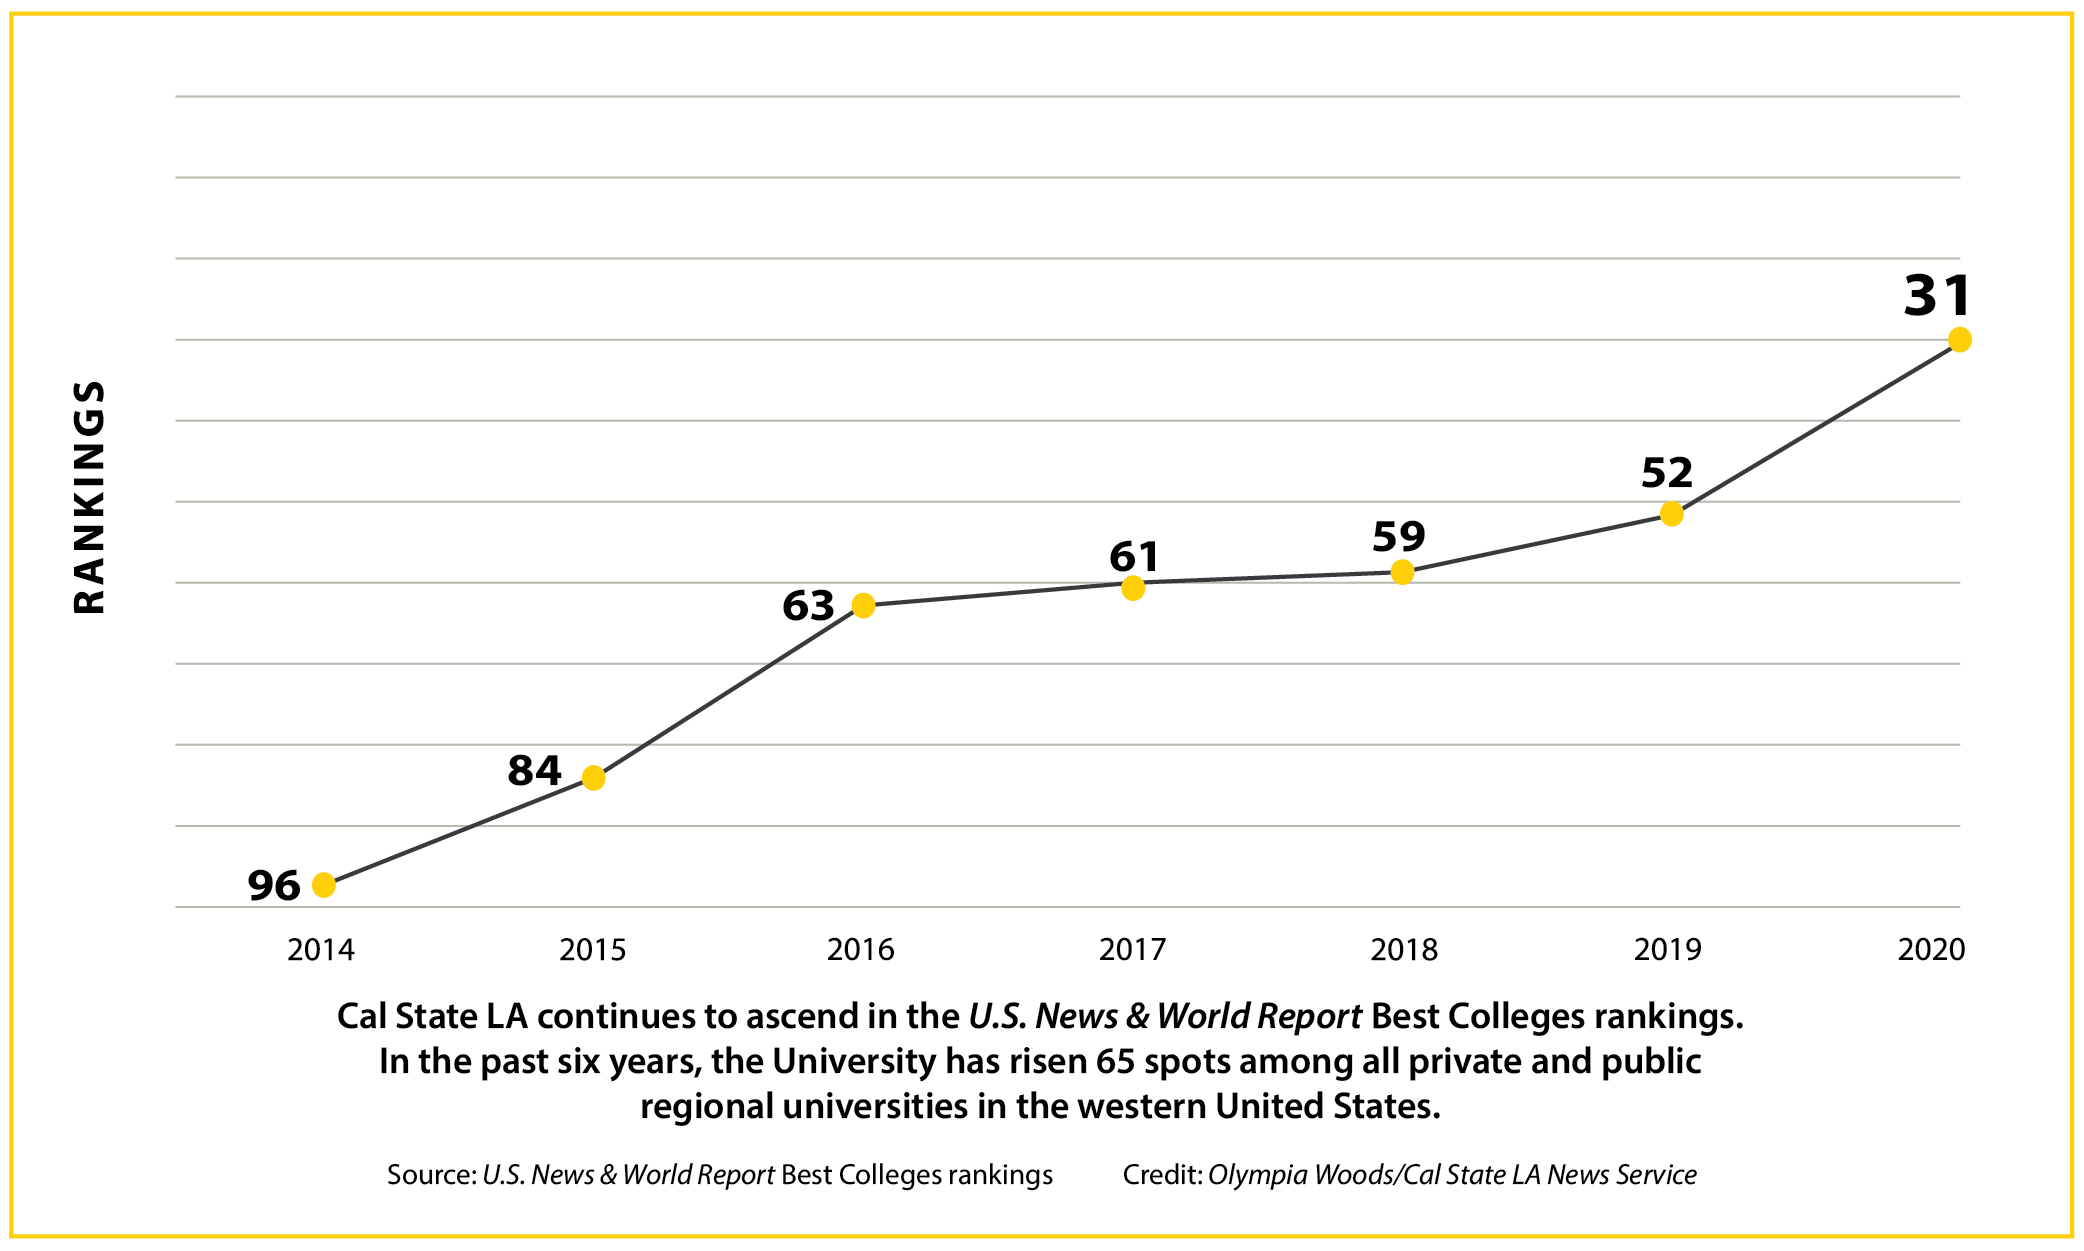 Line graph tracking Cal State LA's rise in the U.S. News rankings over the past six years.